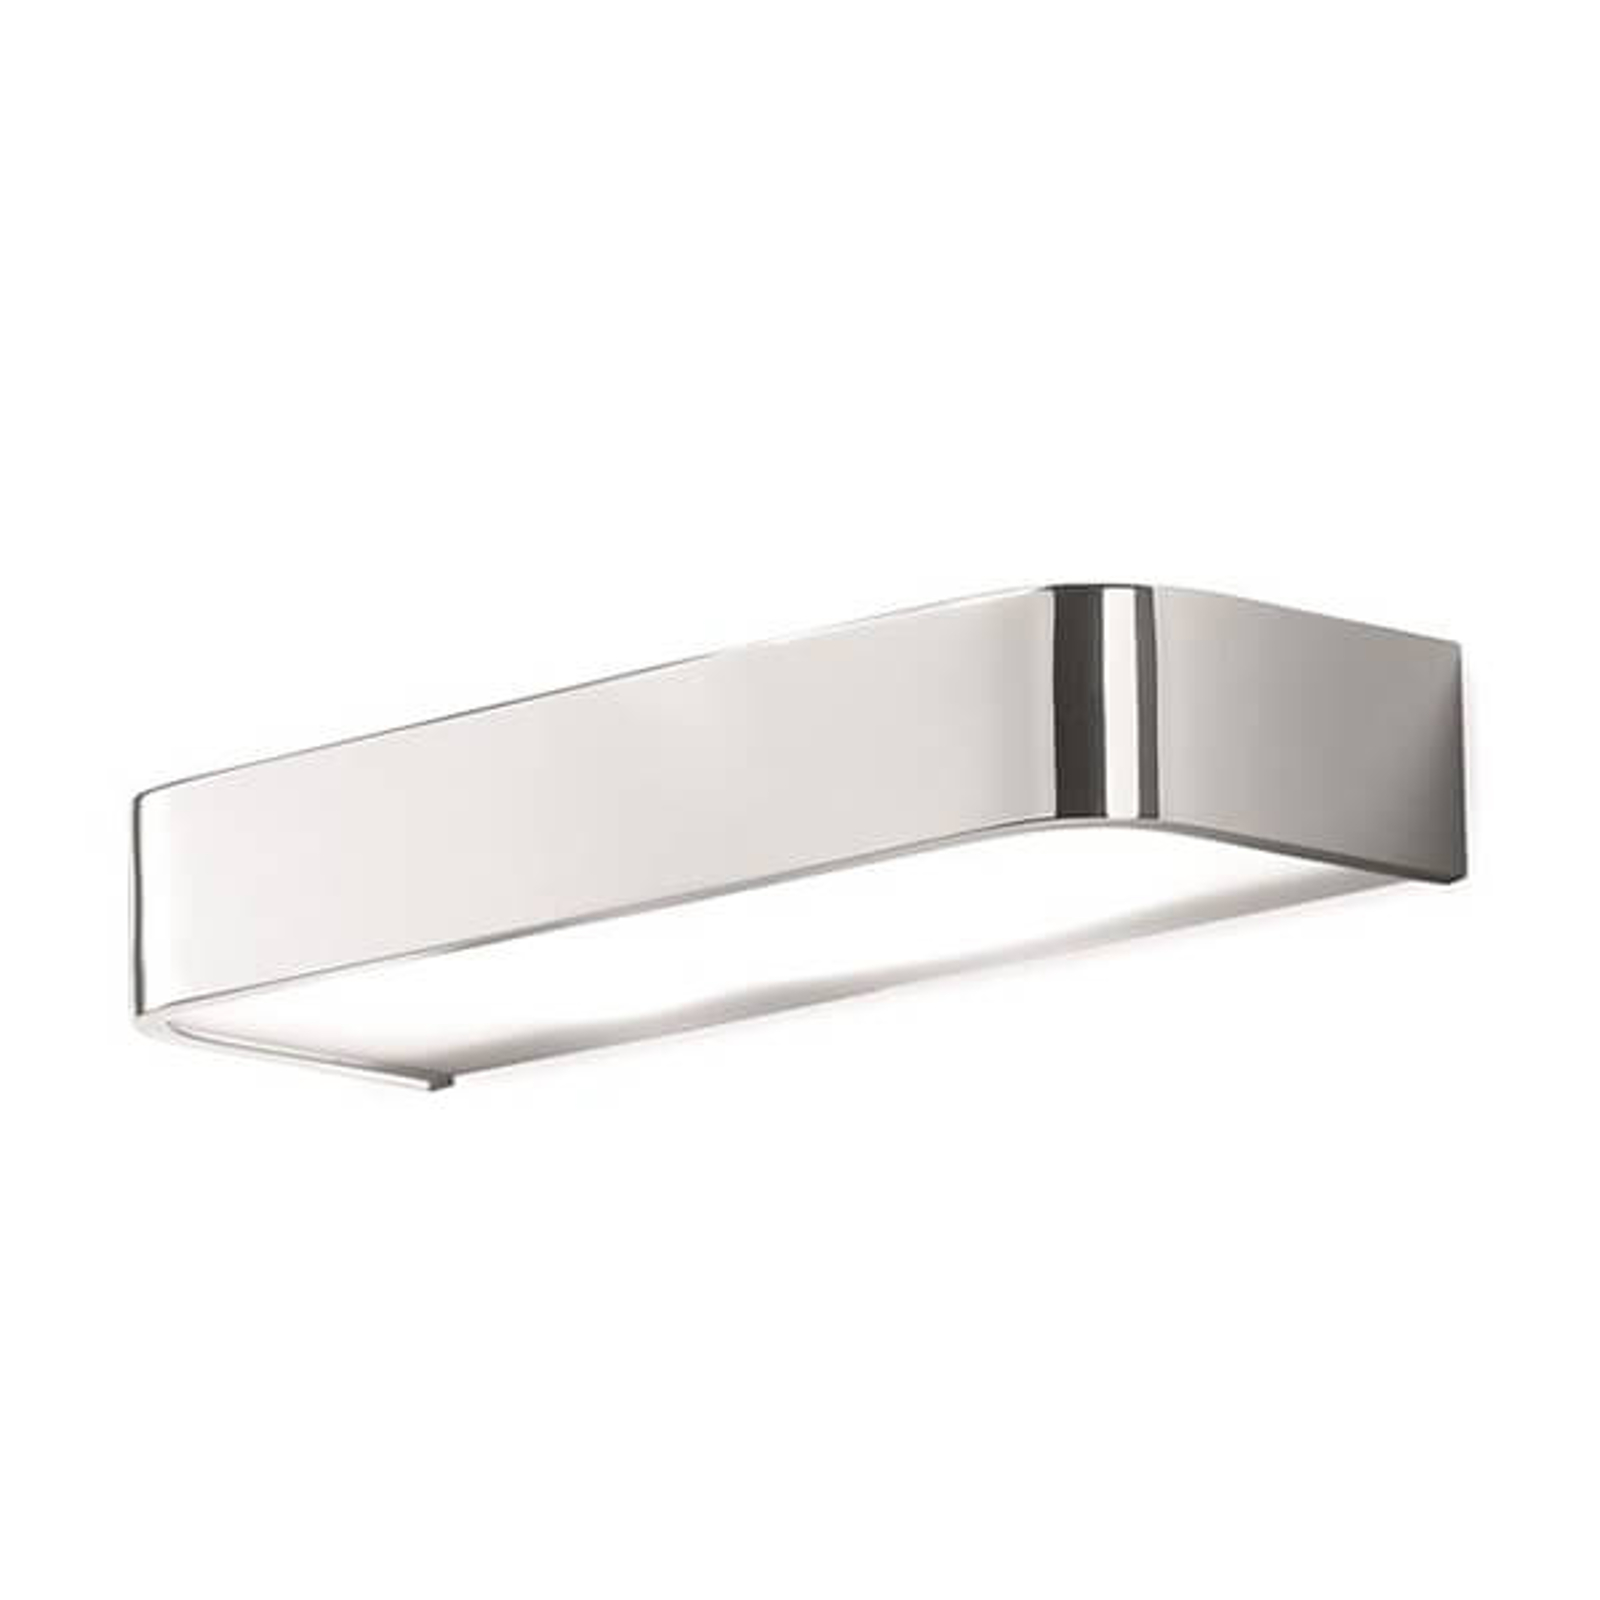 Applique da bagno Arcos con LED, 30 cm cromo